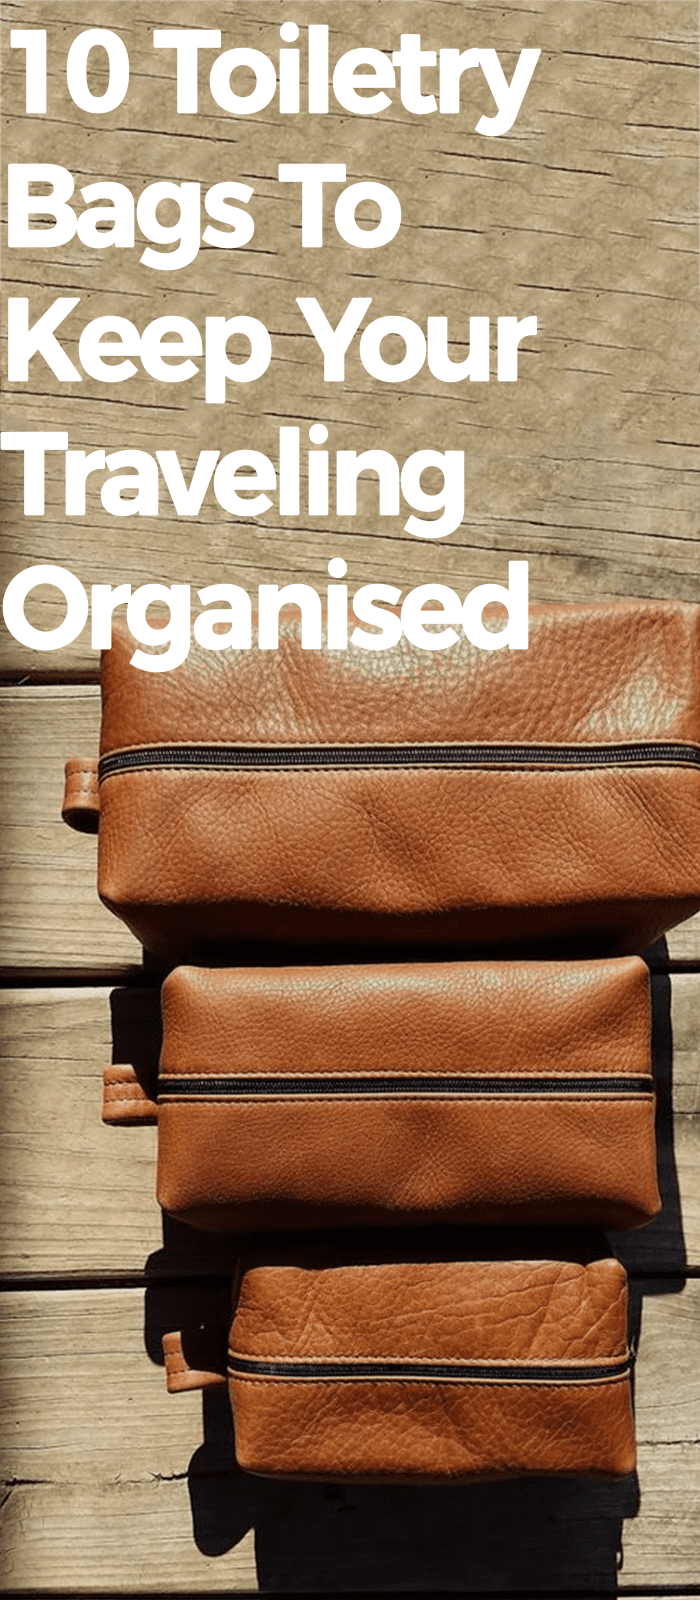 10 Toiletry Bags To Keep Your Traveling Organised.